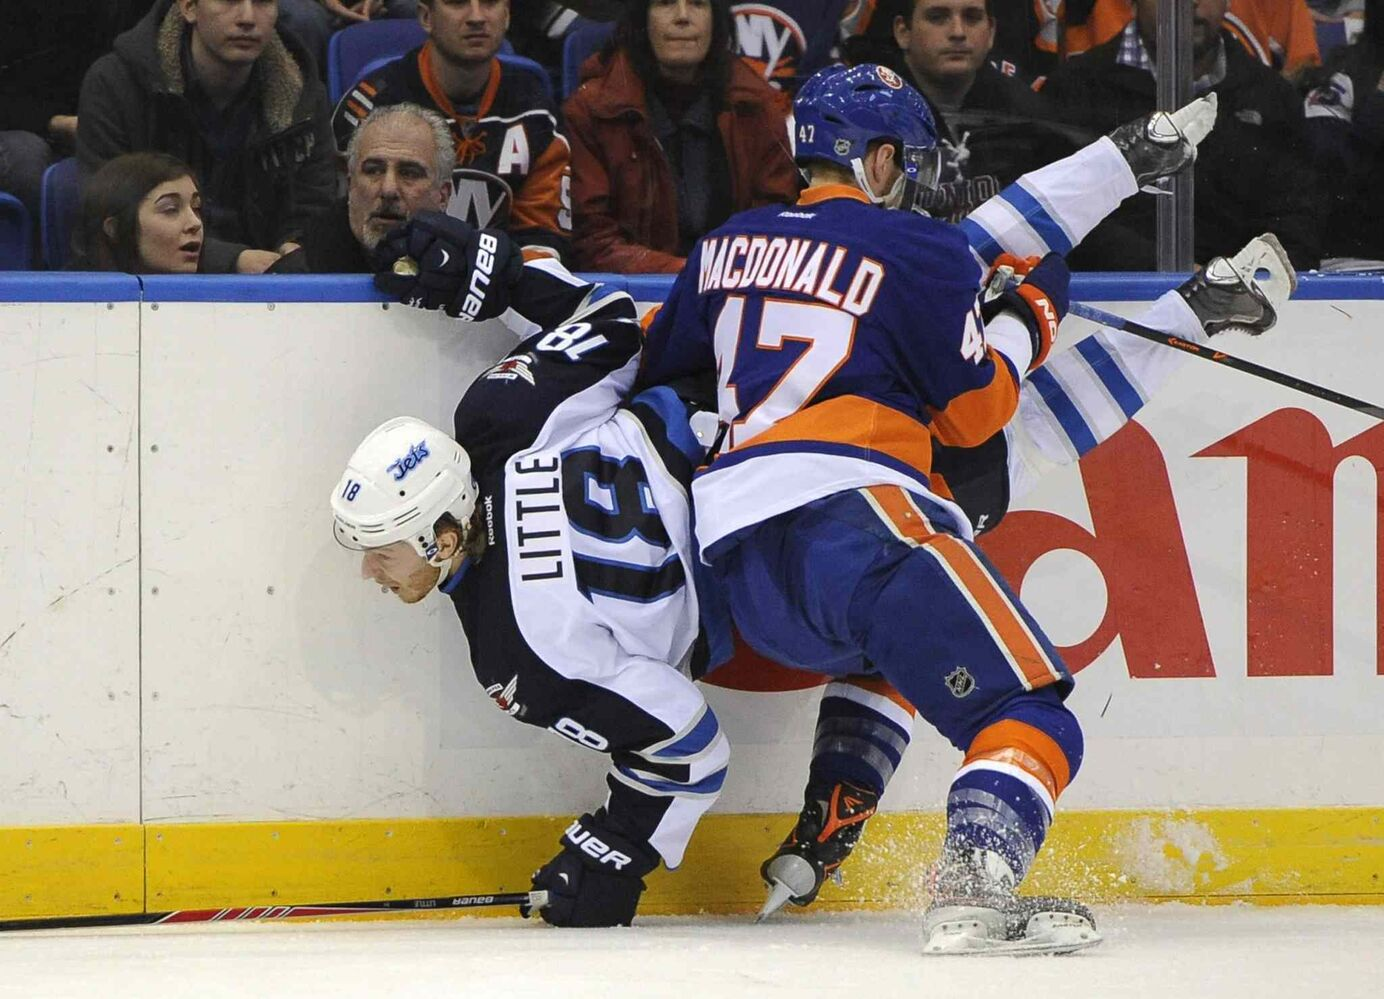 Andrew MacDonald (right) of the New York Islanders shoves Winnipeg Jets forward Bryan Little into the boards in the first period of Wednesday's night's game in Uniondale, N.Y. (Kathy Kmonicek / The Associated Press)